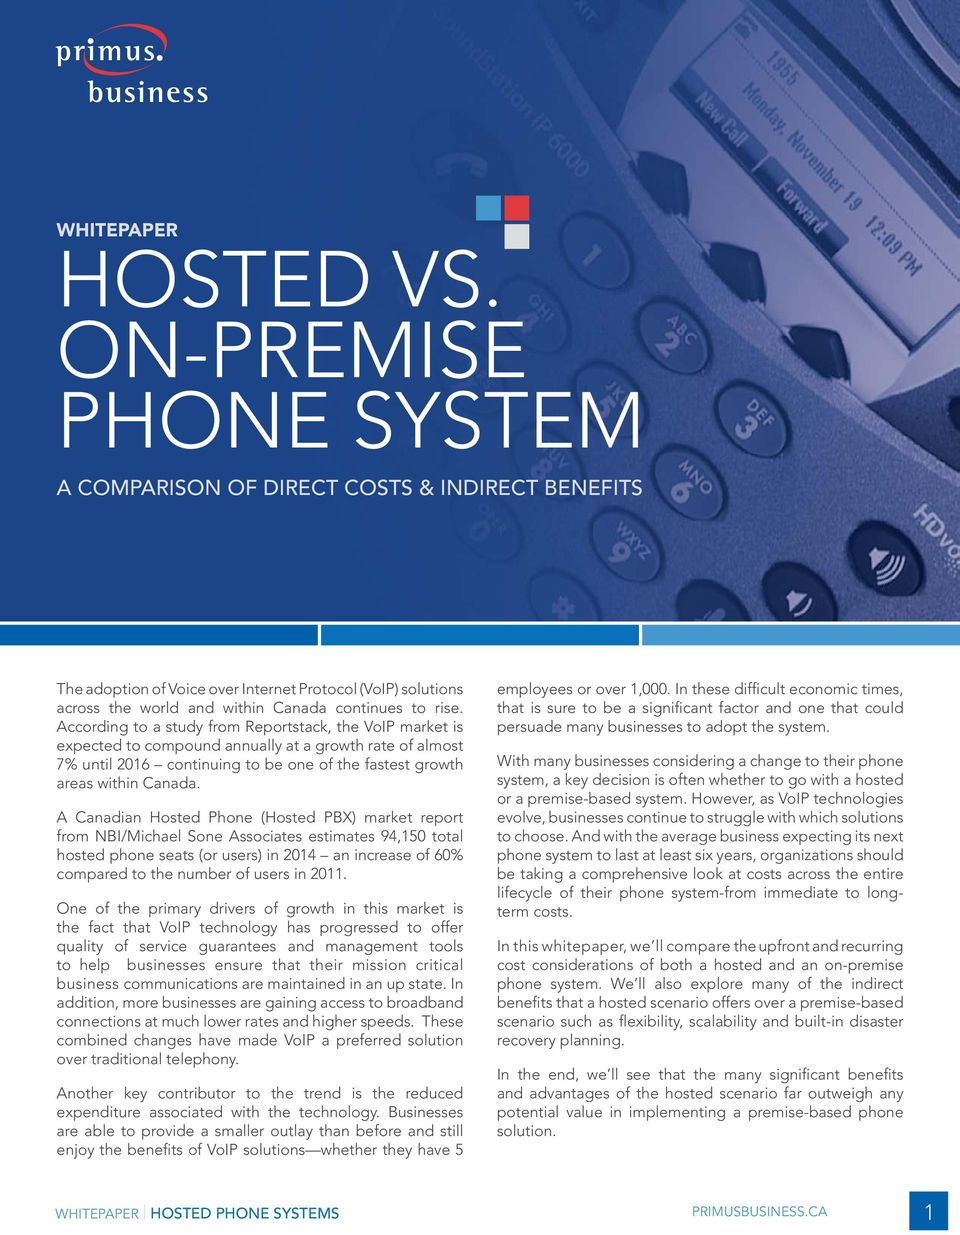 According to a study from Reportstack, the VoIP market is expected to compound annually at a growth rate of almost 7% until 2016 continuing to be one of the fastest growth areas within Canada.